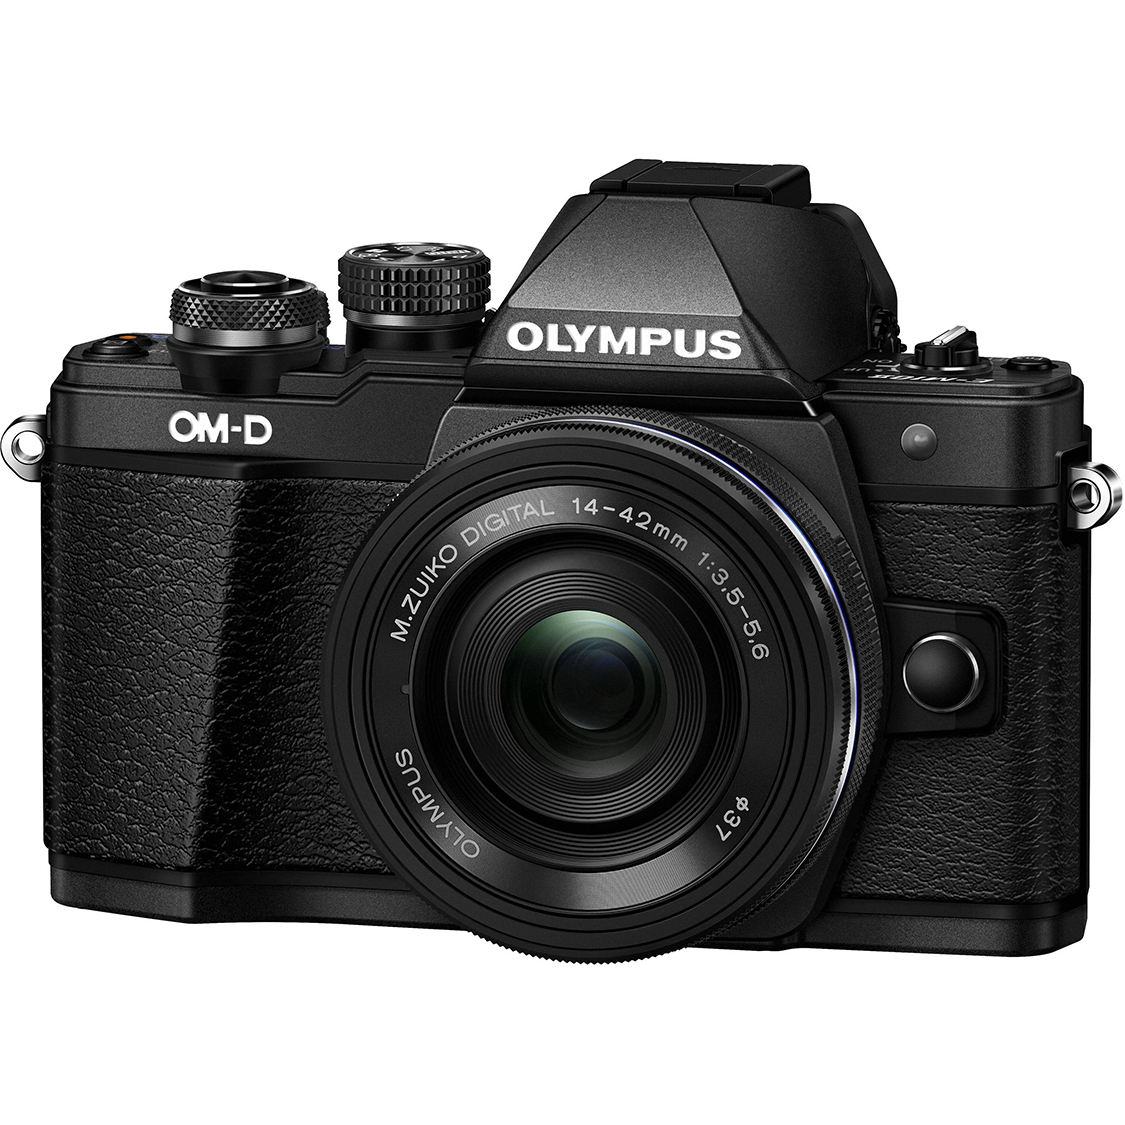 Olympus E-M10 Mark II (black) with EZ 14-42mm Lens